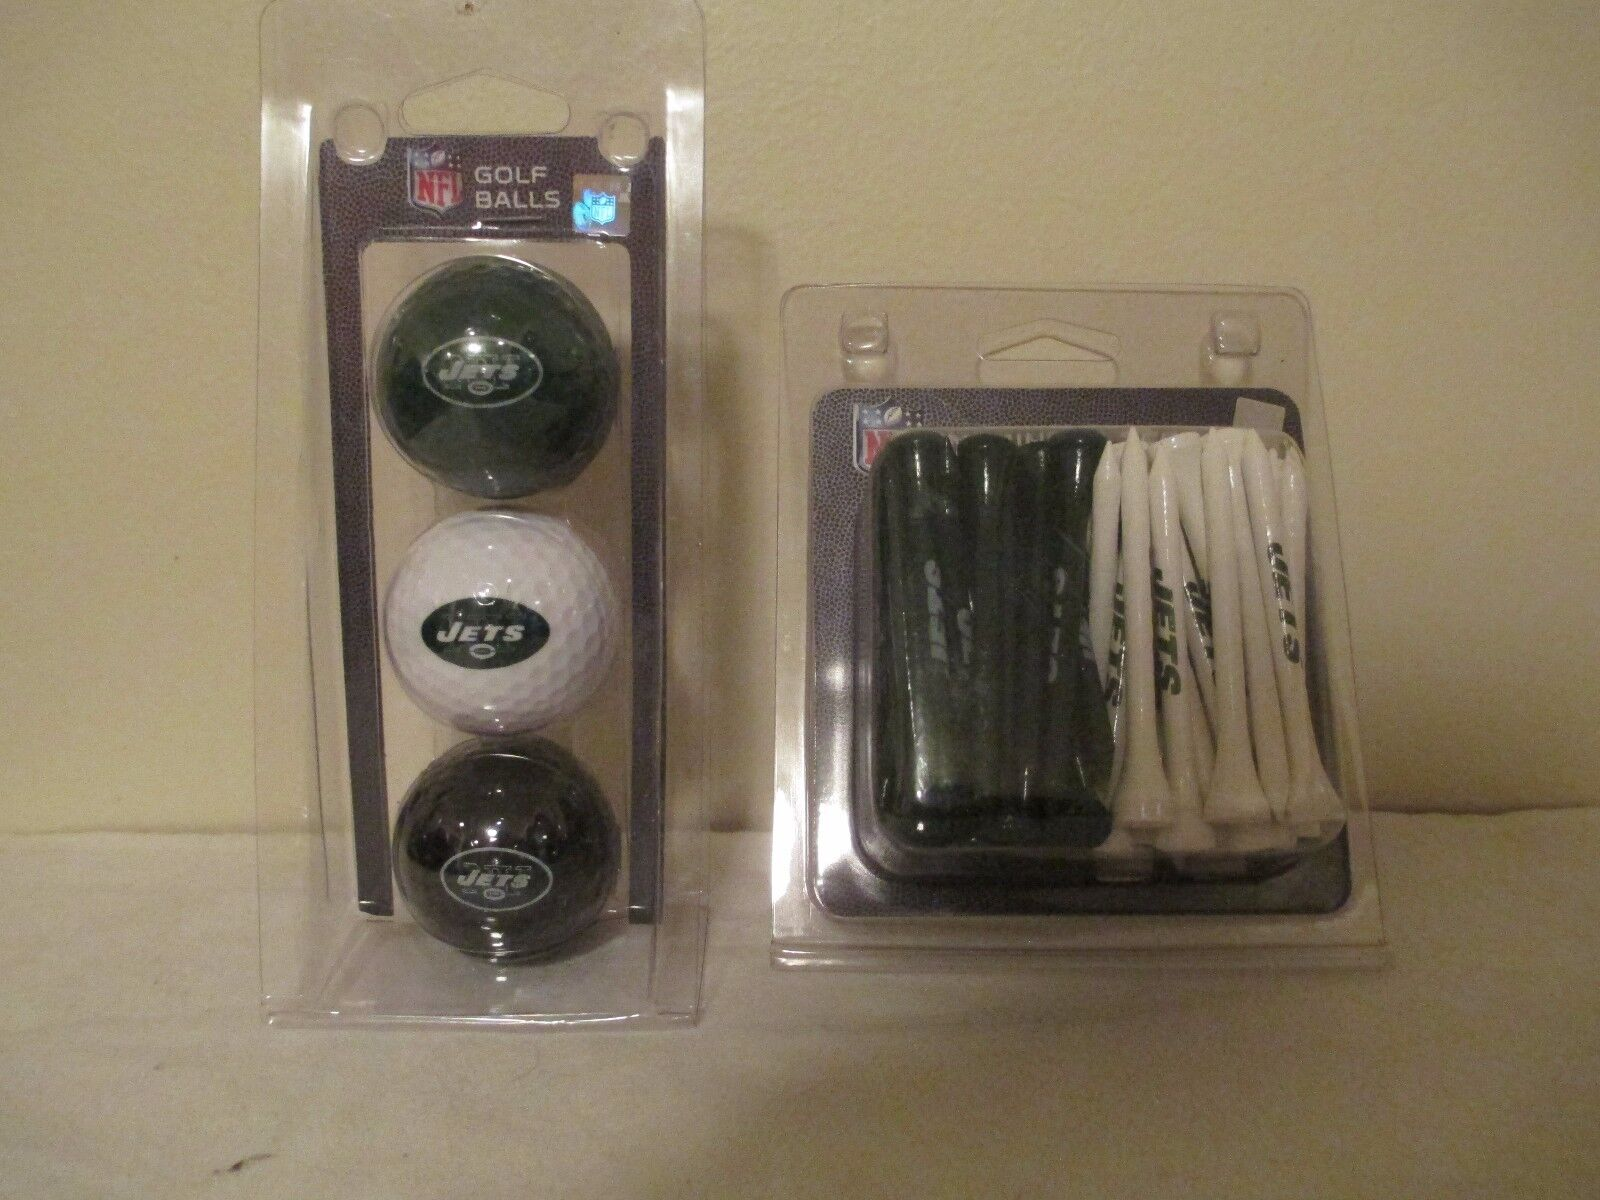 New York Jets 3 Pack Golf Balls & 50 Pack Team of Tees! NEW